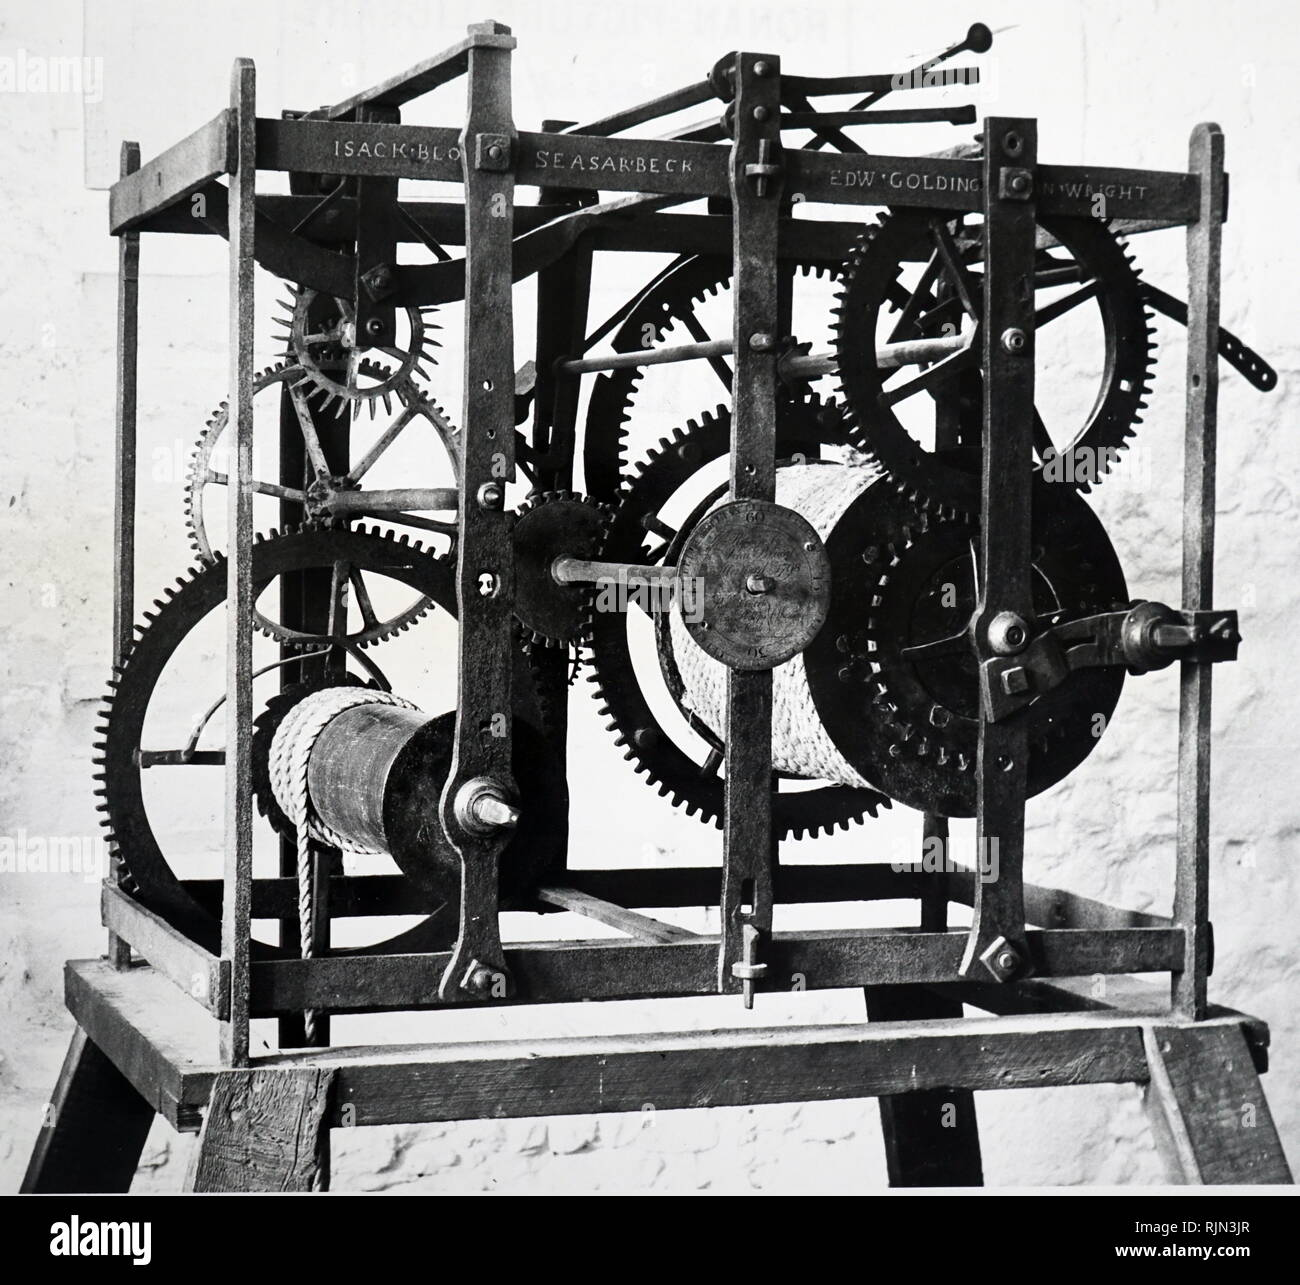 Pendulum Clock Mechanism Stock Photos & Pendulum Clock